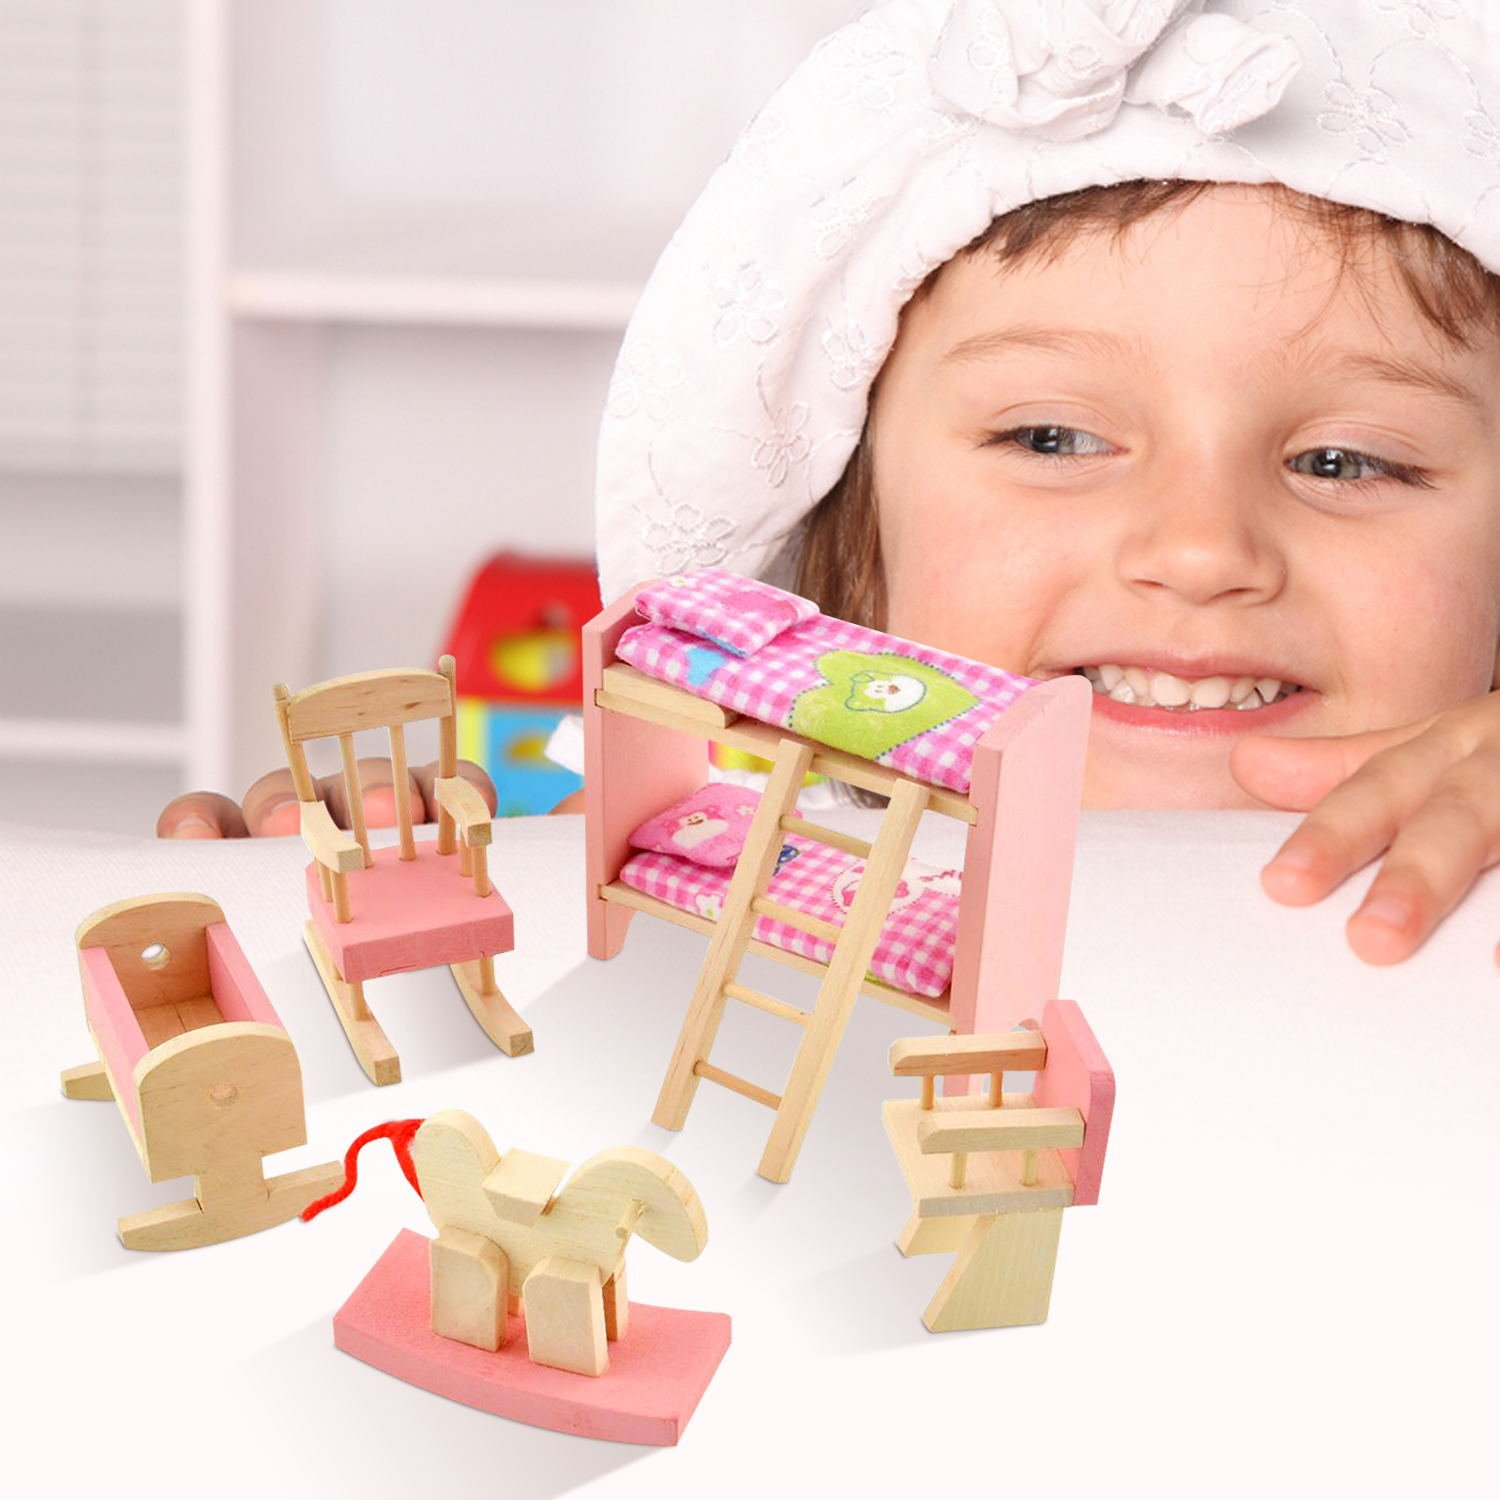 Wooden Doll House Furniture Set,Miniature Bathroom/Kid Room/Kitchen House Nursery House Furniture Dollhouse Decoration Accessories for Kids Toddlers Children Pretend Role Play Toy By Peradix(Bunk Bed)